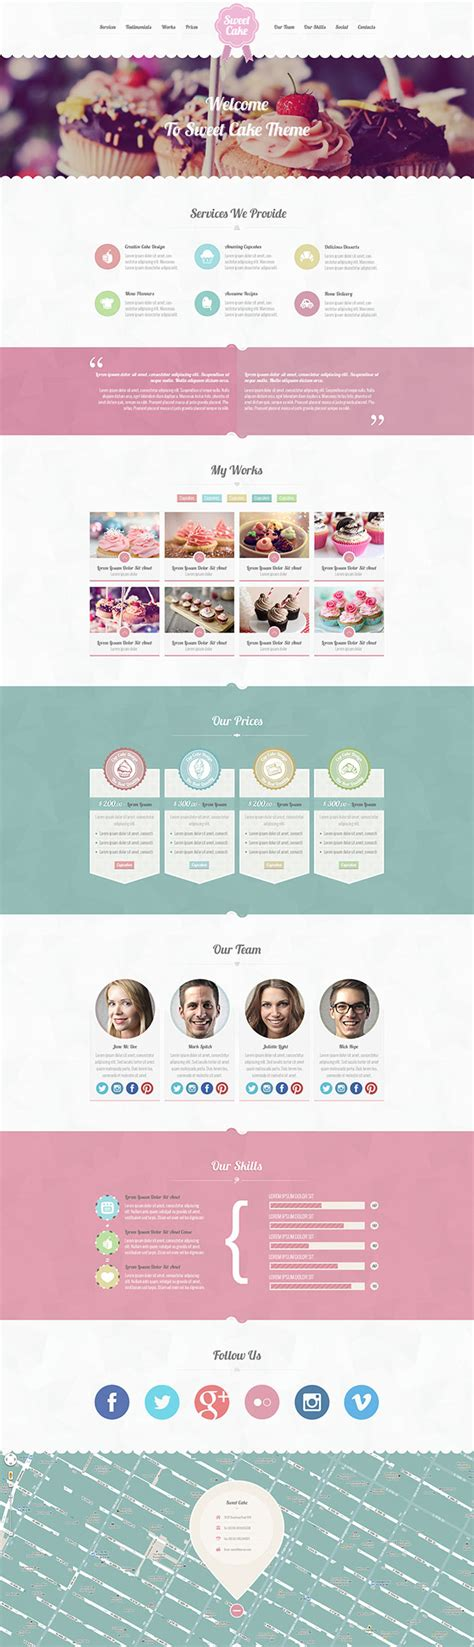 wordpress themes design inspiration 9 of the best wordpress themes for bakeries 2016 athemes